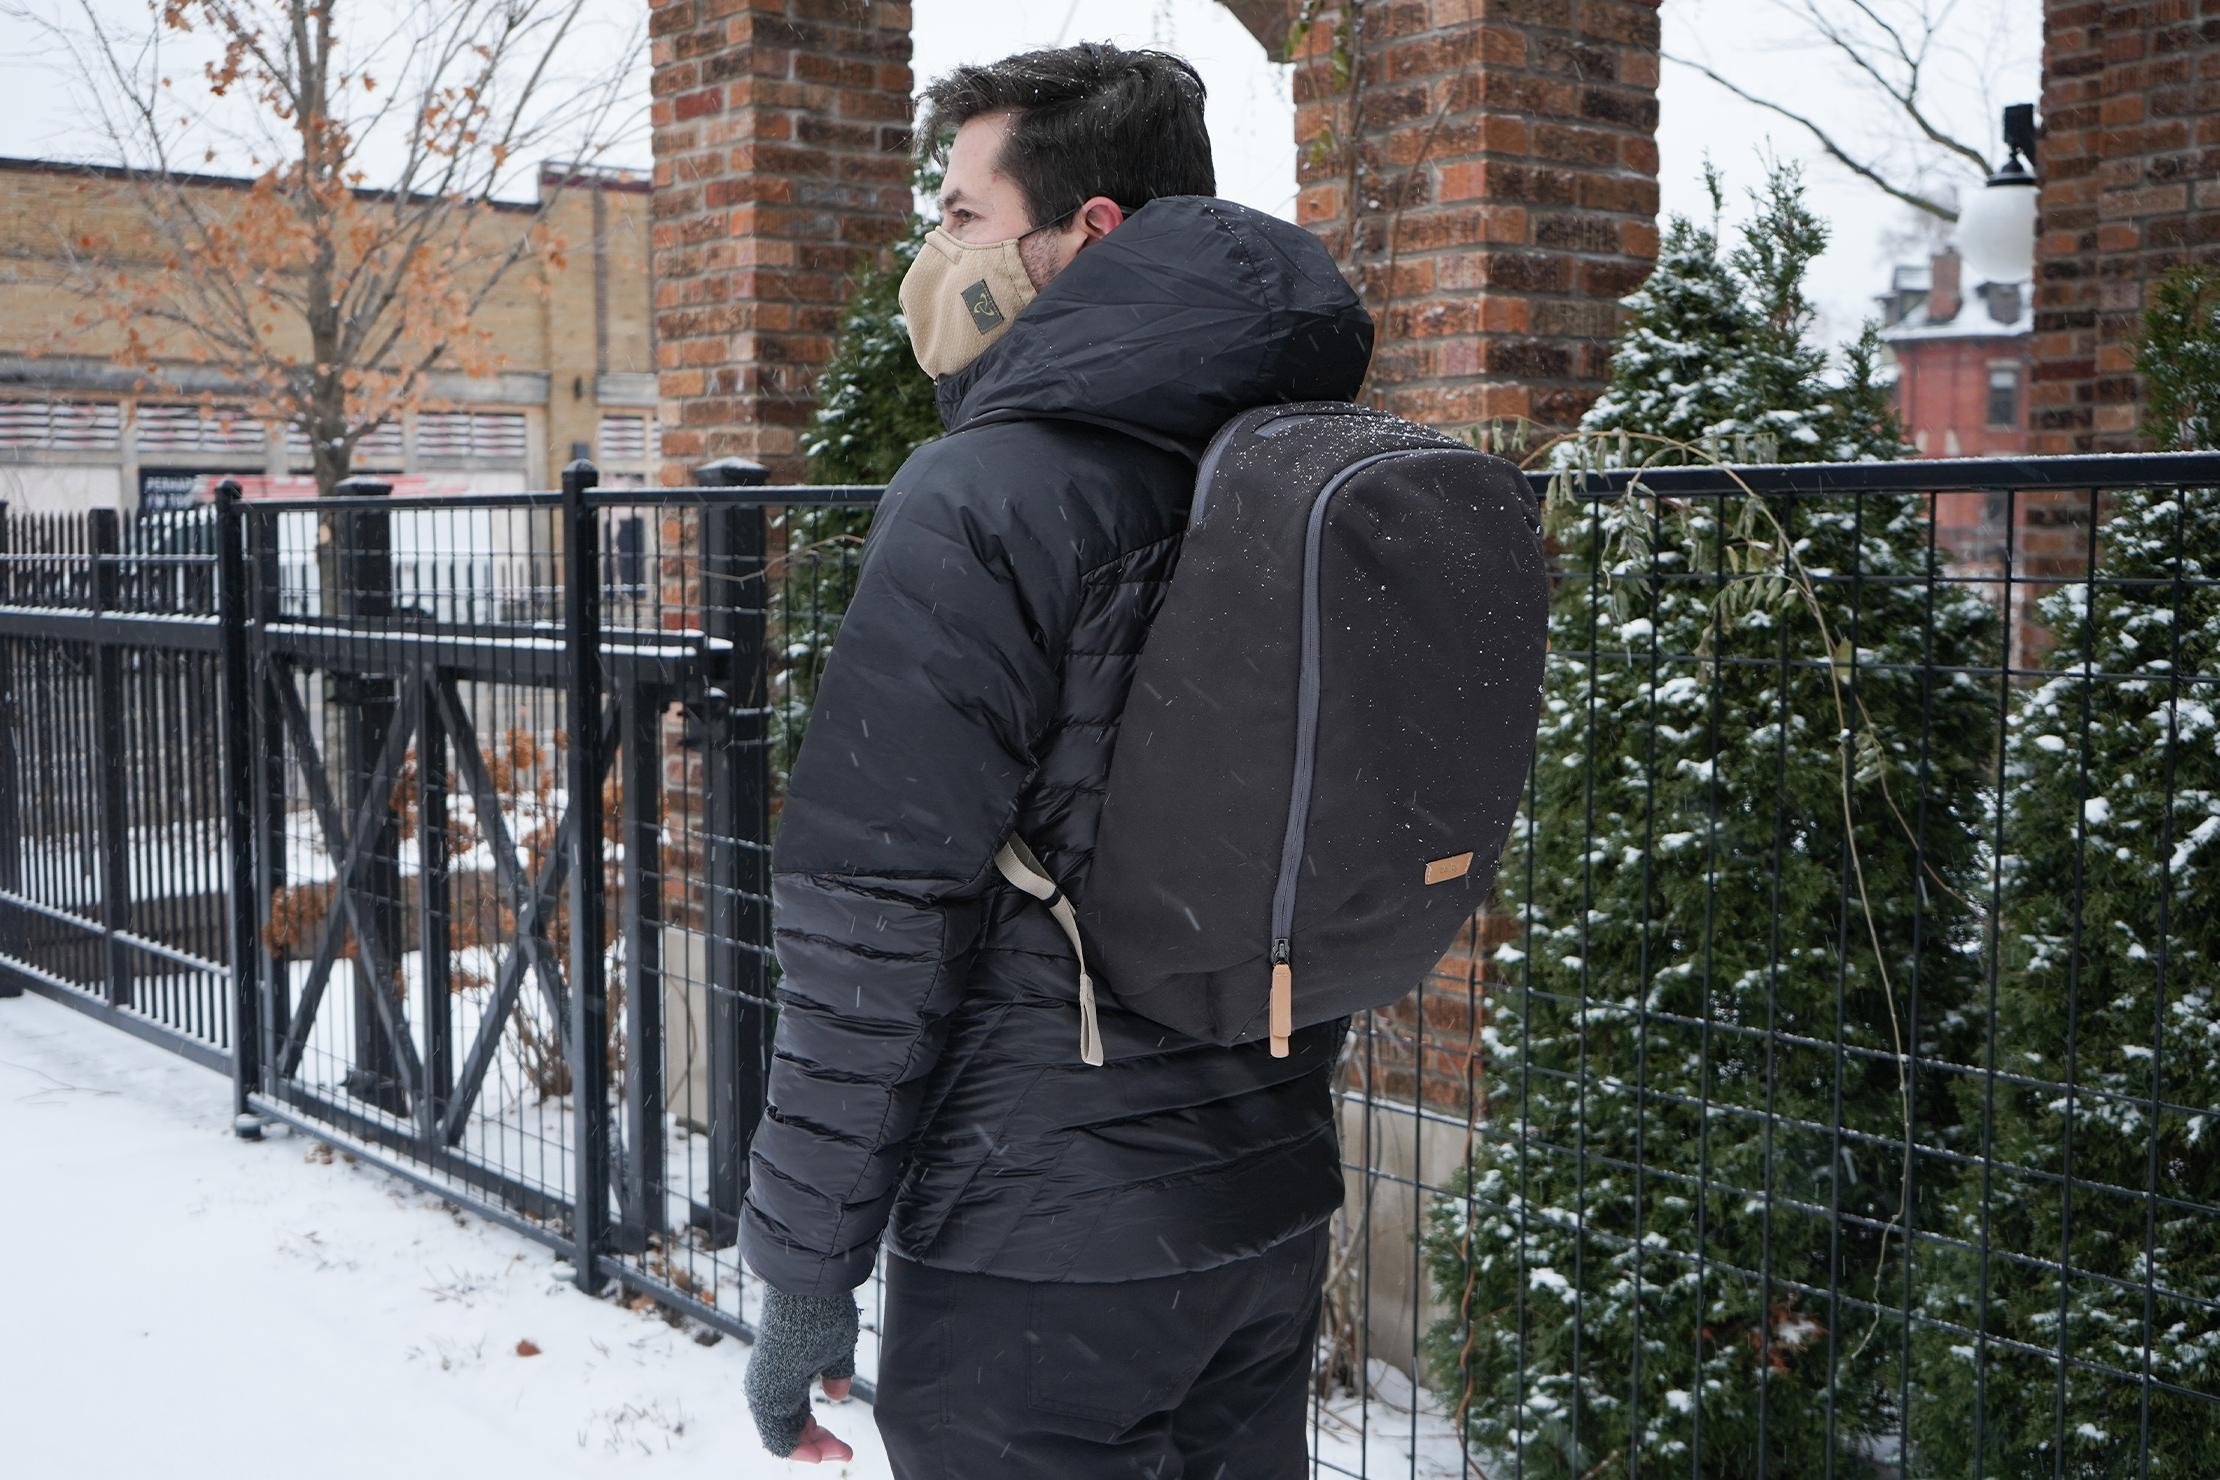 Bellroy Transit Workpack | Carrying the backpack to the office